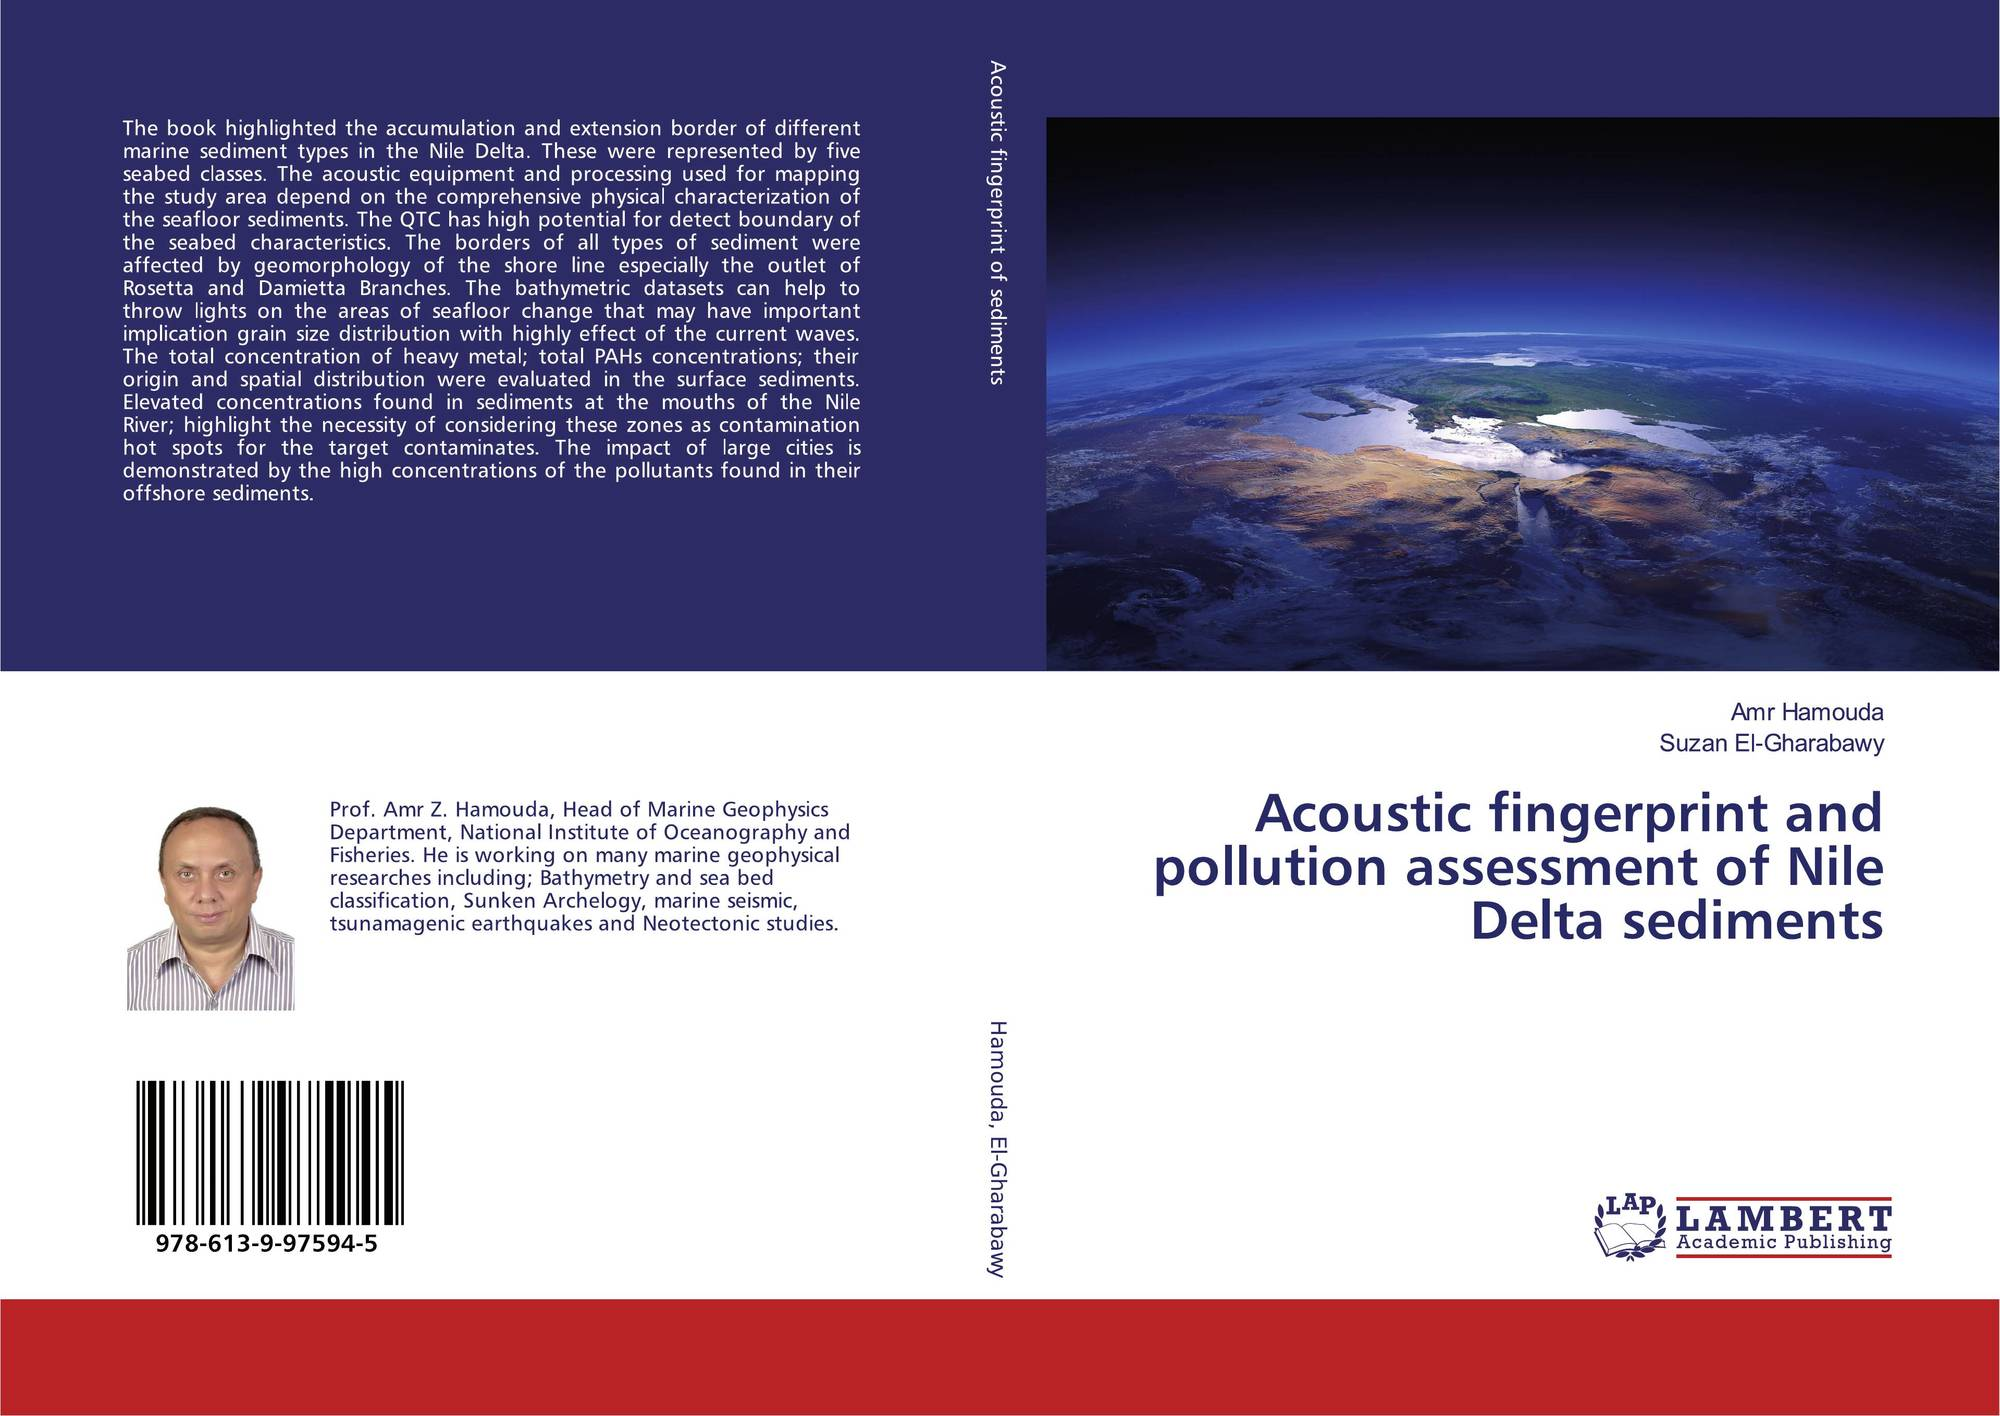 Lap Lambert Academic Publishing 155049 Products Marine Wiring Books Bookcover Of Acoustic Fingerprint And Pollution Assessment Nile Delta Sediments